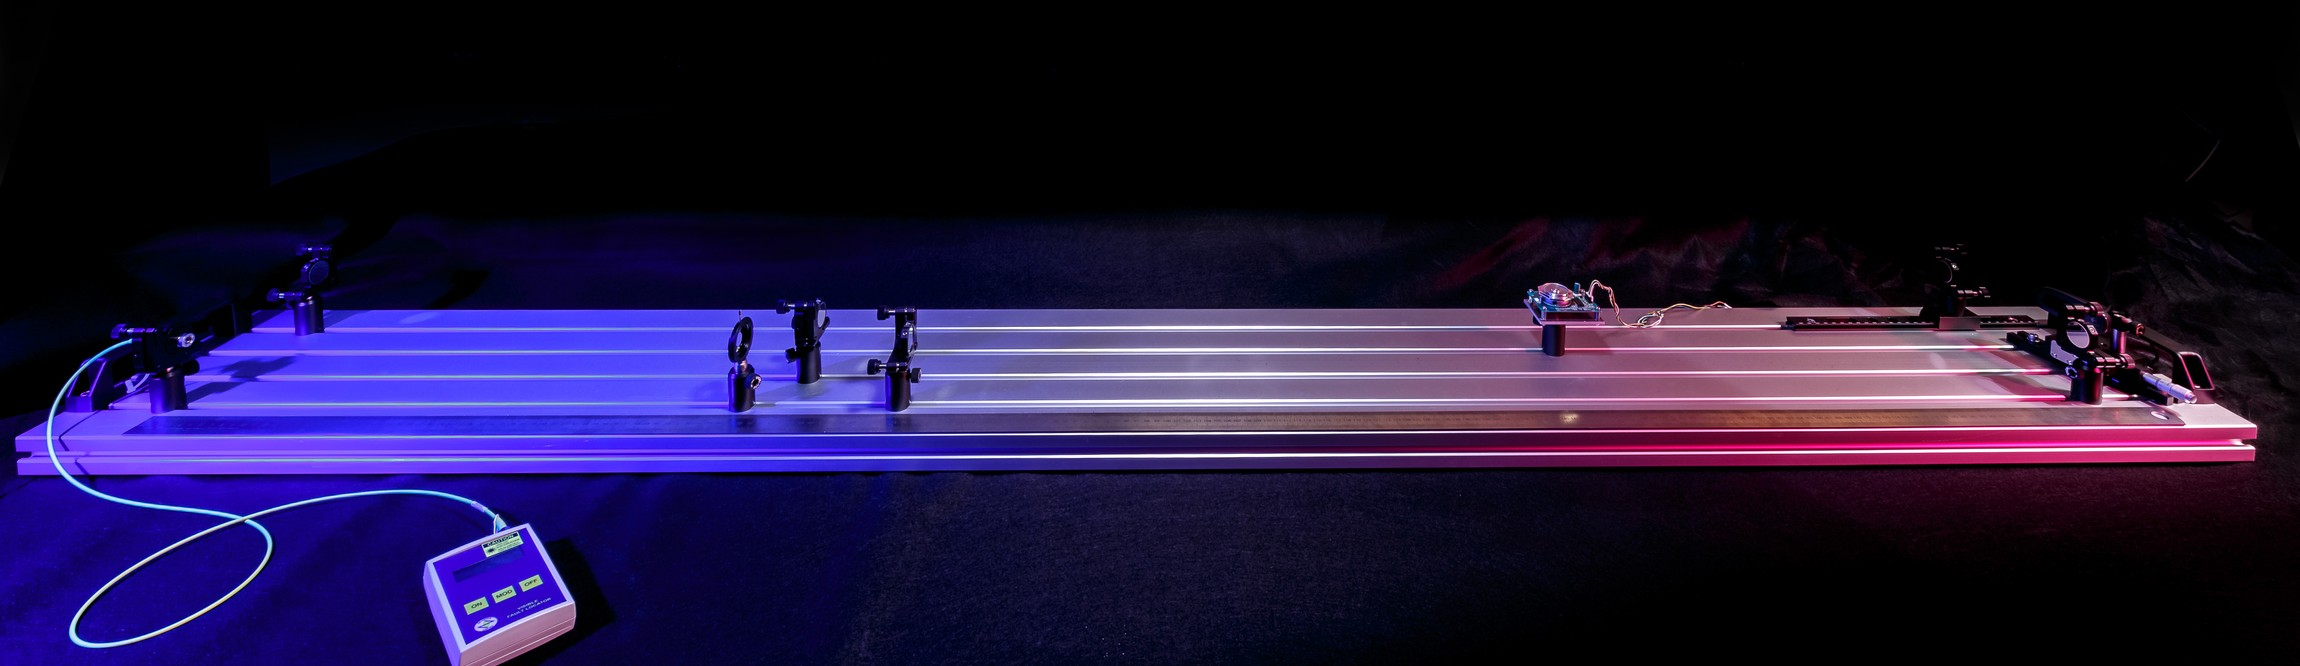 A Diy Laser Set Up To Accurately Measure The Speed Of